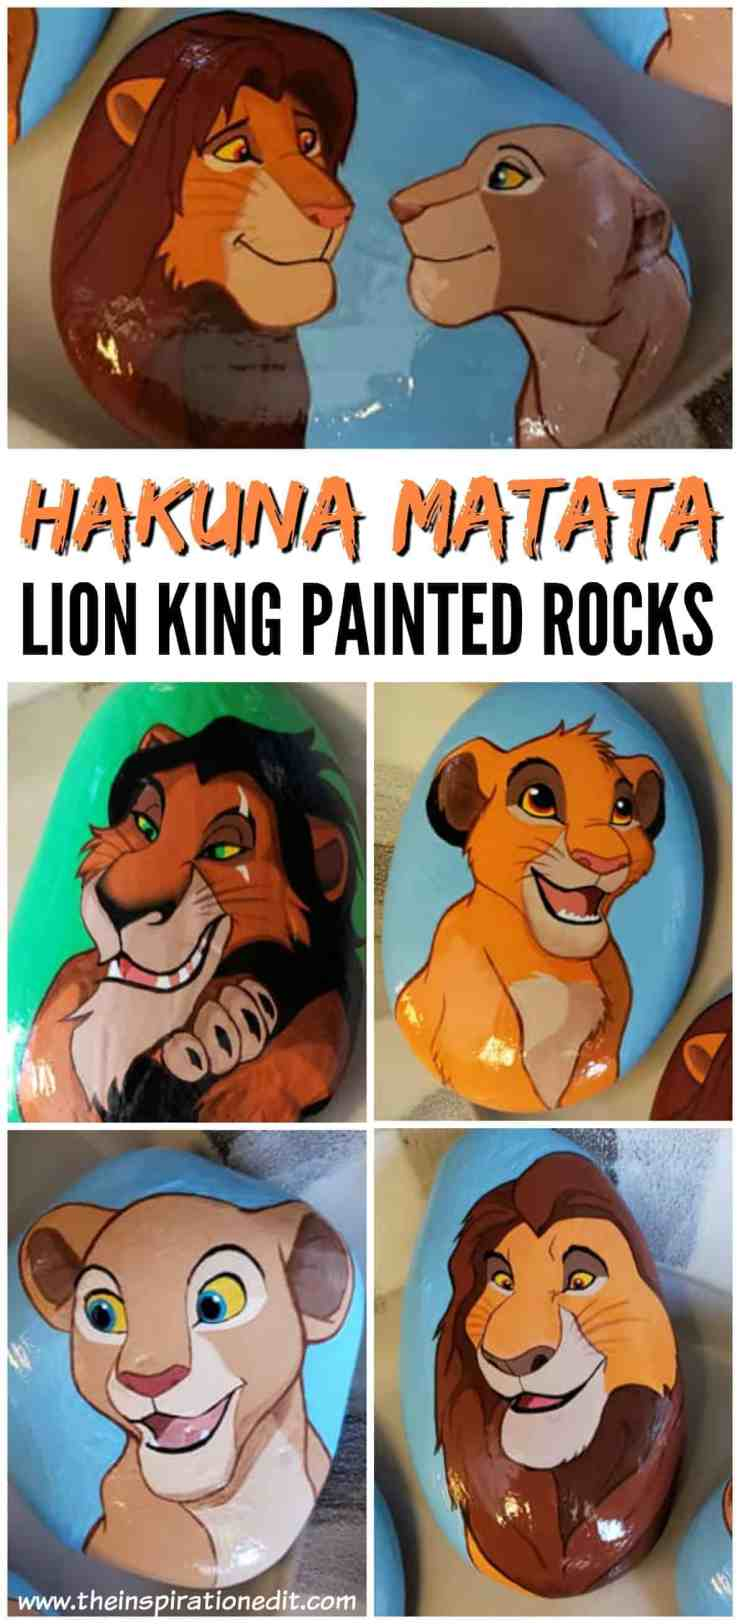 hakuna - Lion King Painted Rock Stones By Carly S